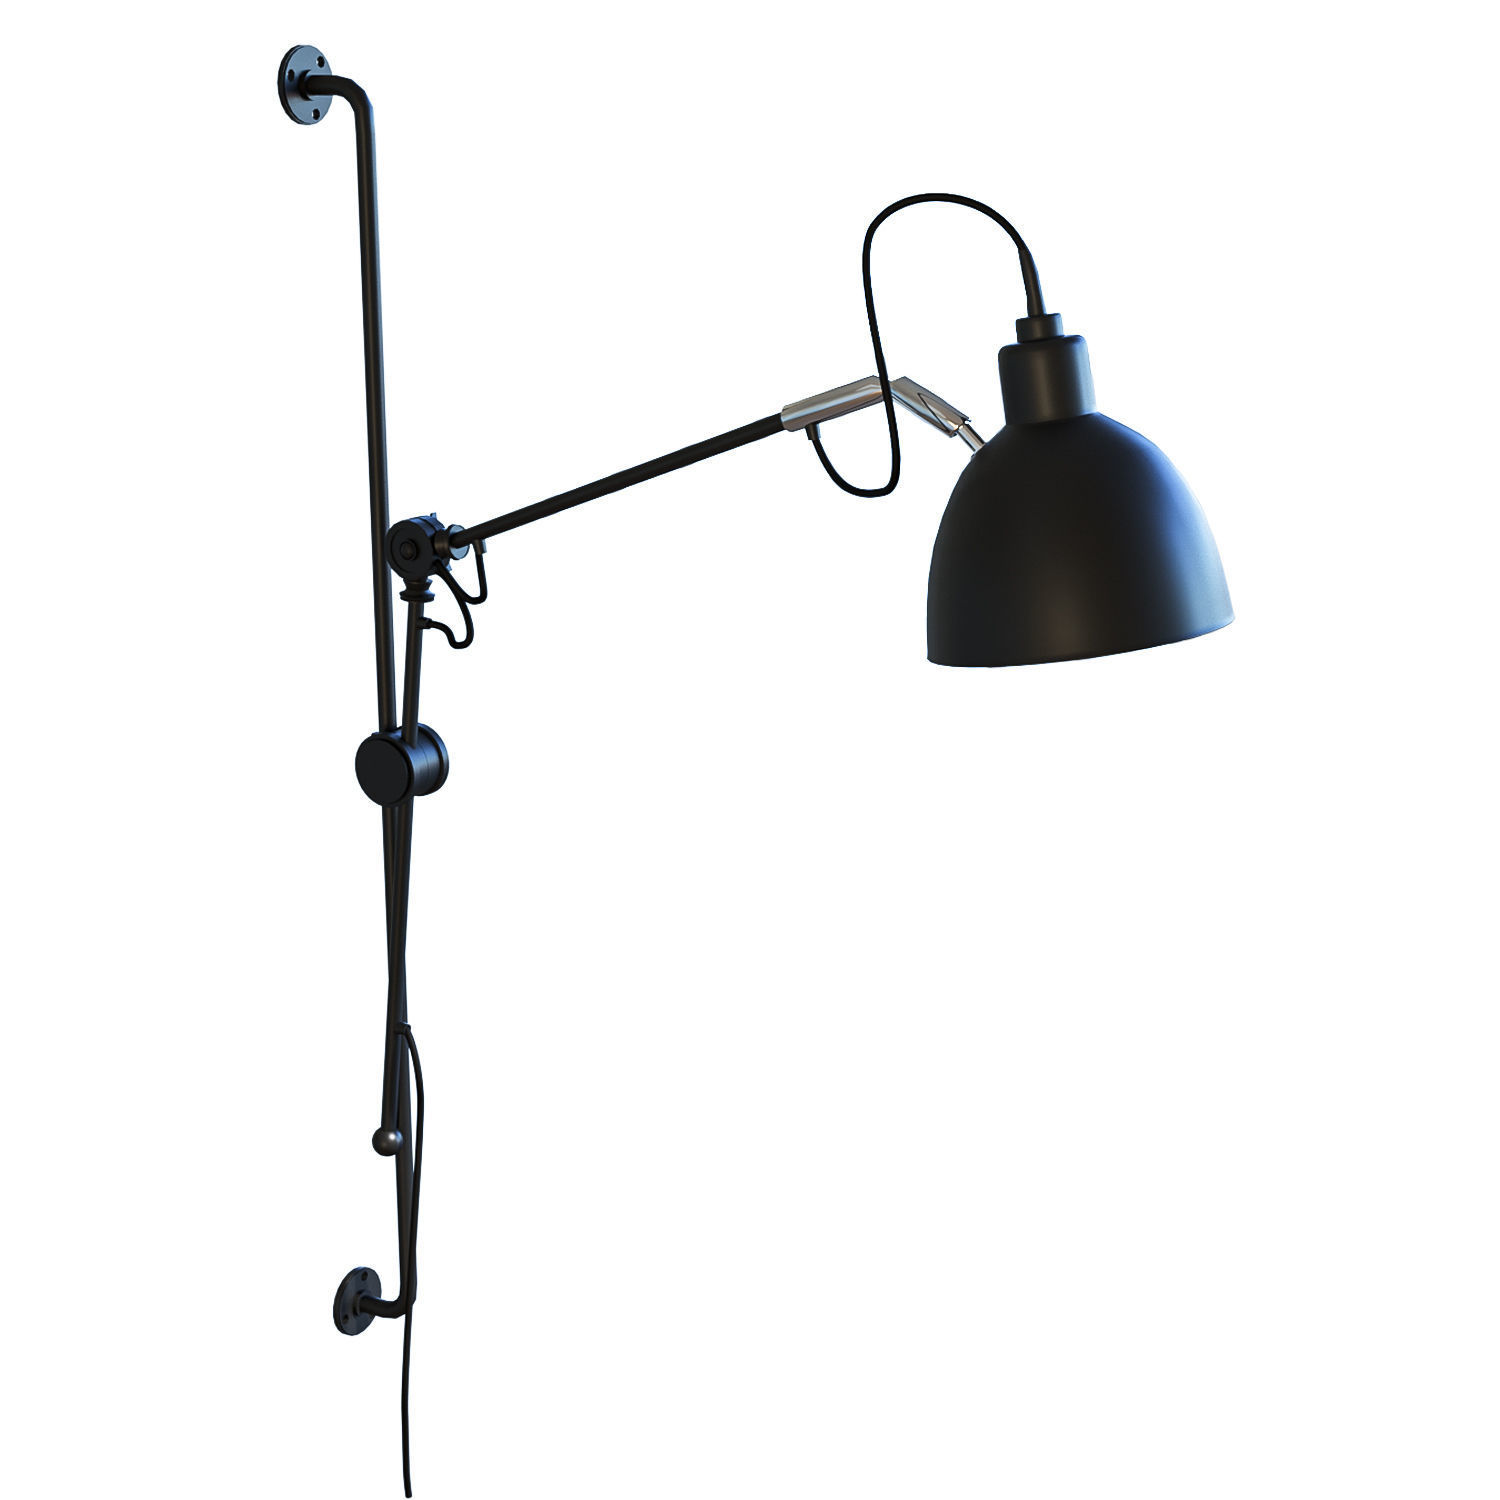 Arm Lamp Newrays Adjustable Antique Industrial Swing Arm Wall Lamp 3d Model